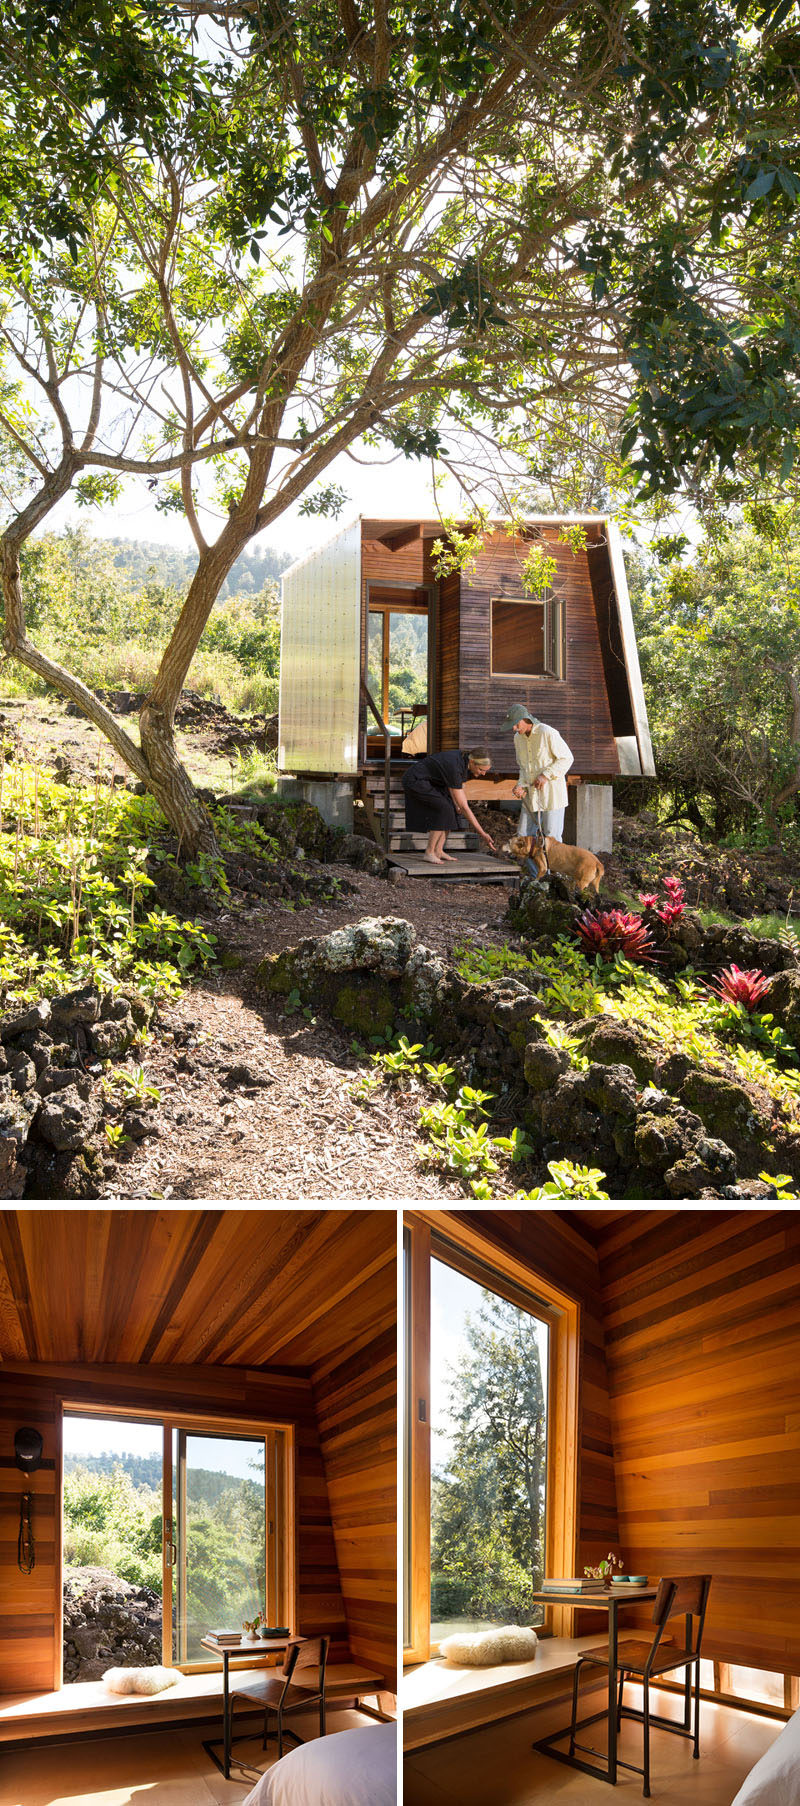 This small and modern cabin houses a small bedroom that looks out towards the lava flow through a large sliding window. Inside, the walls are covered in wood and there's just enough room for a bed, a built-in bench and a small desk with chair. #ModernCabin #Architecture